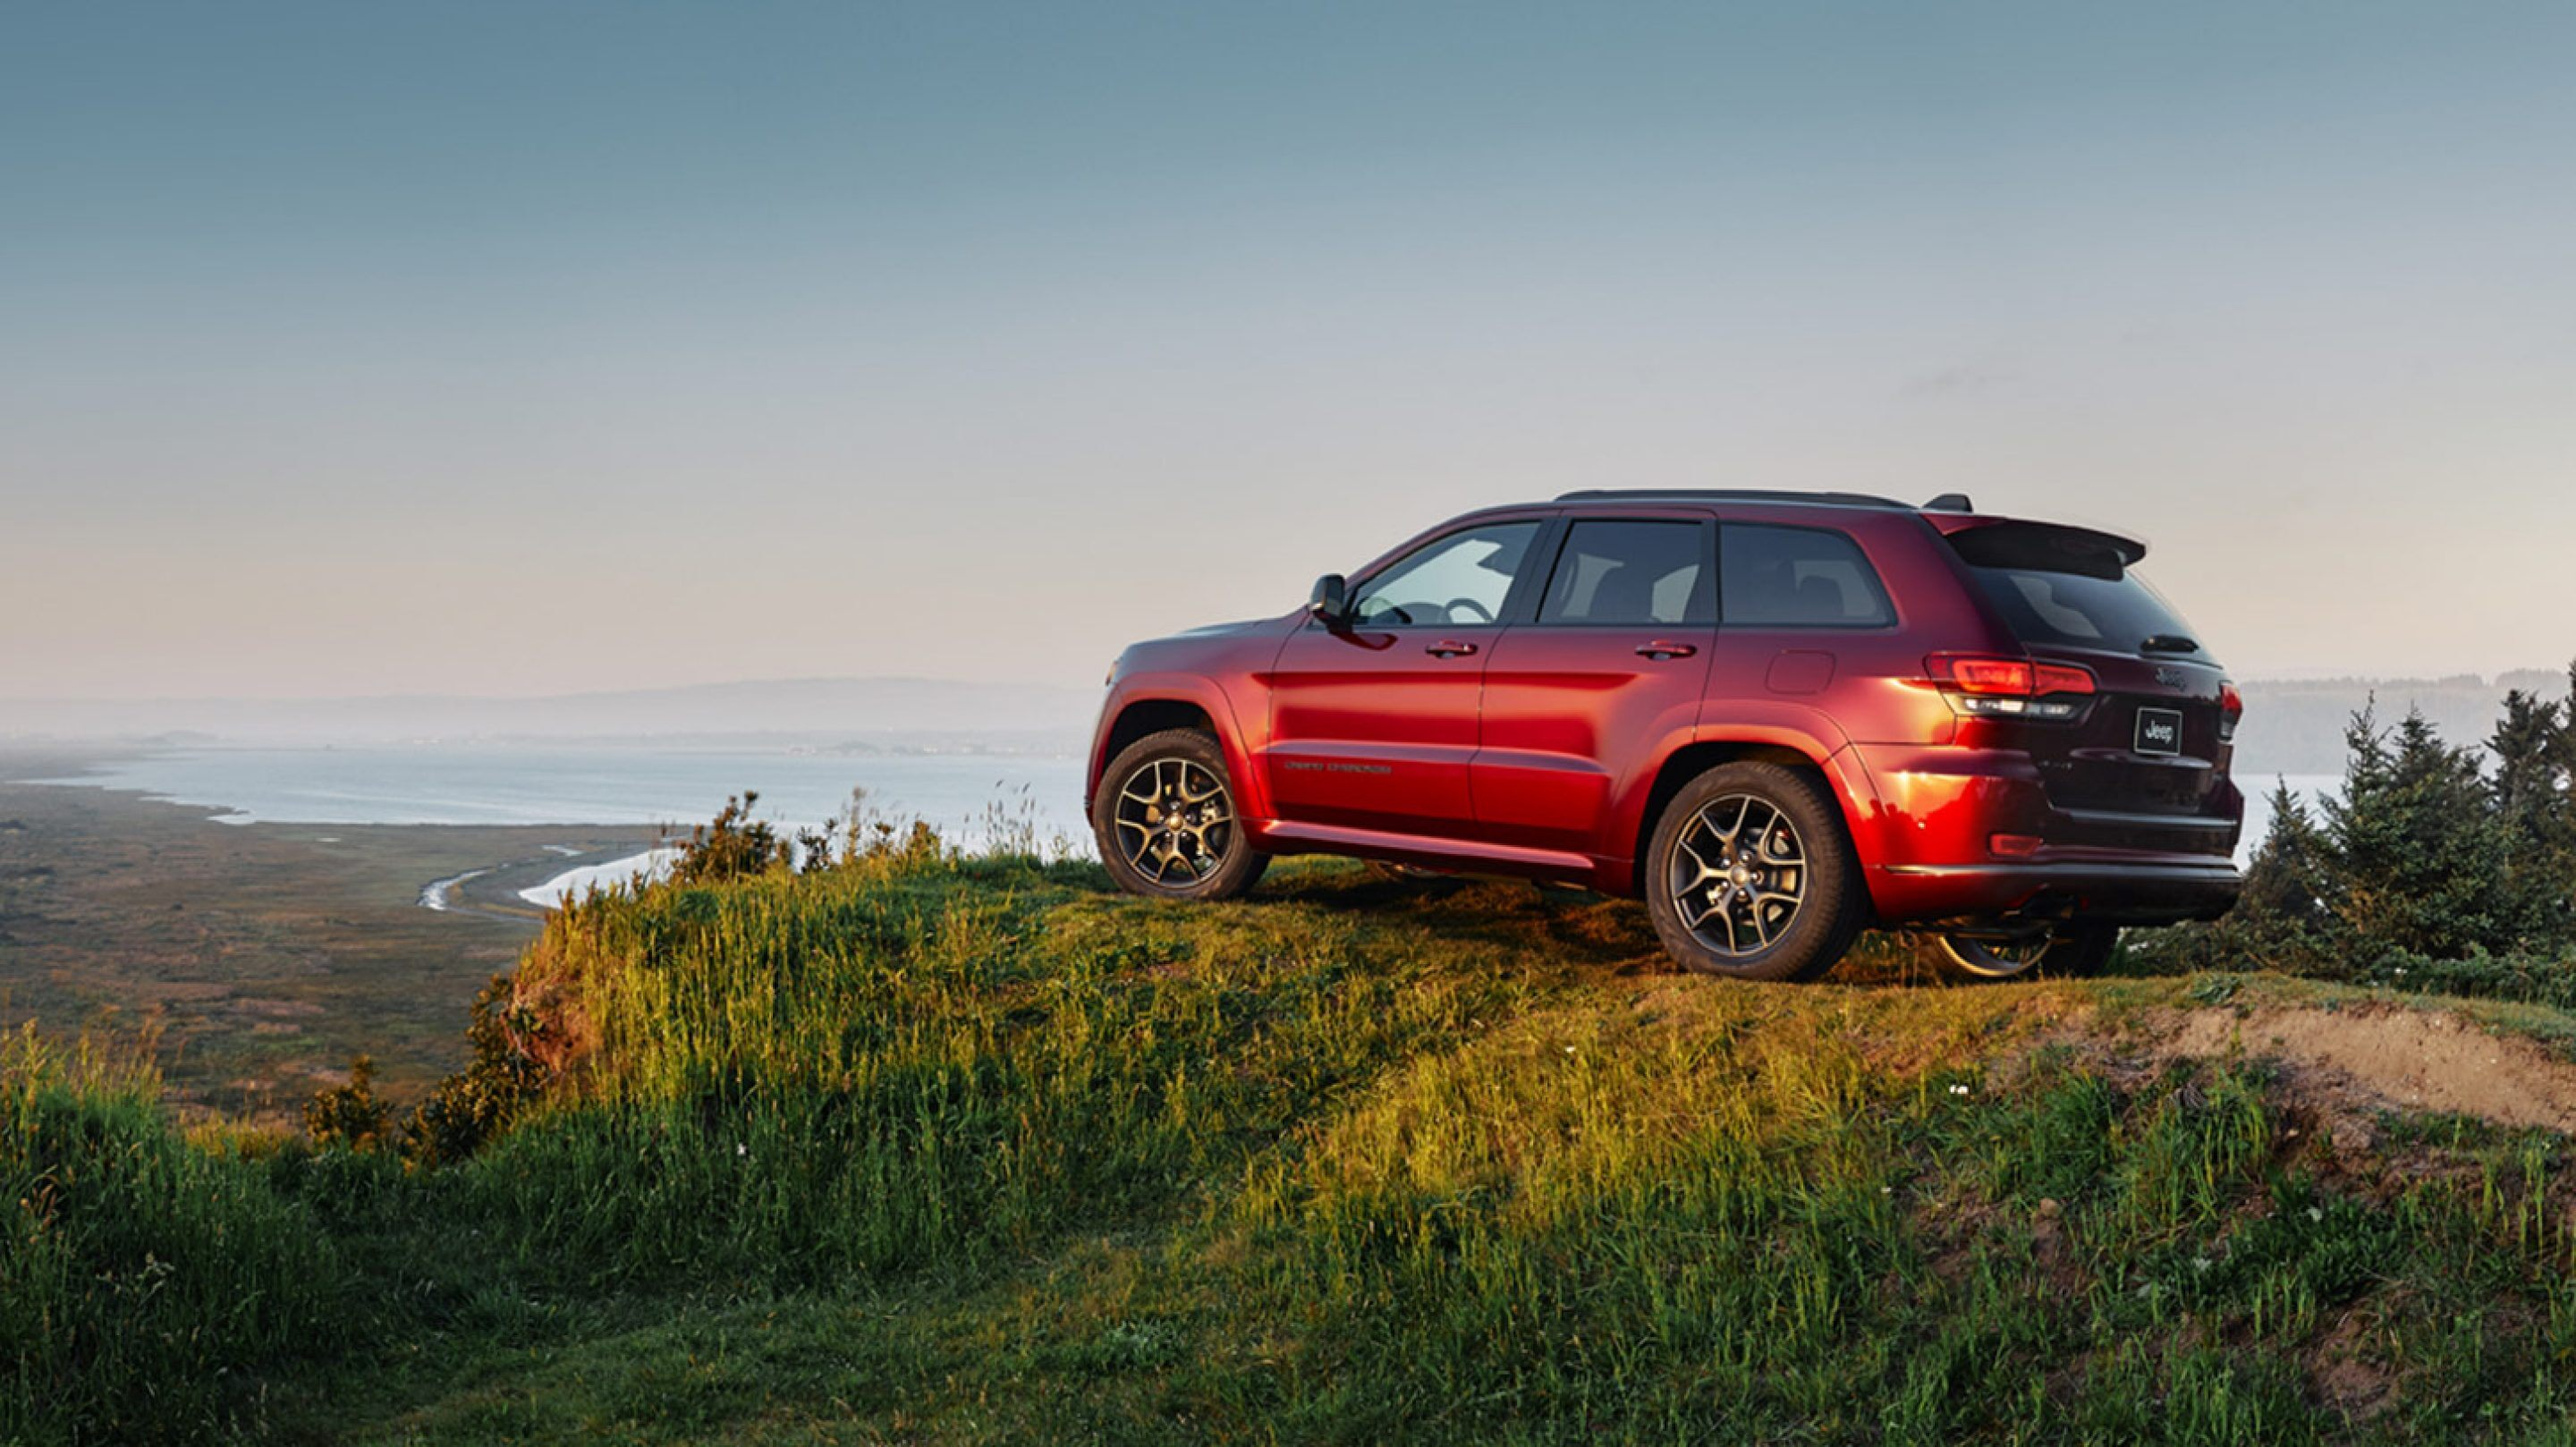 red 2019 jeep grand cherokee parked on a mountain